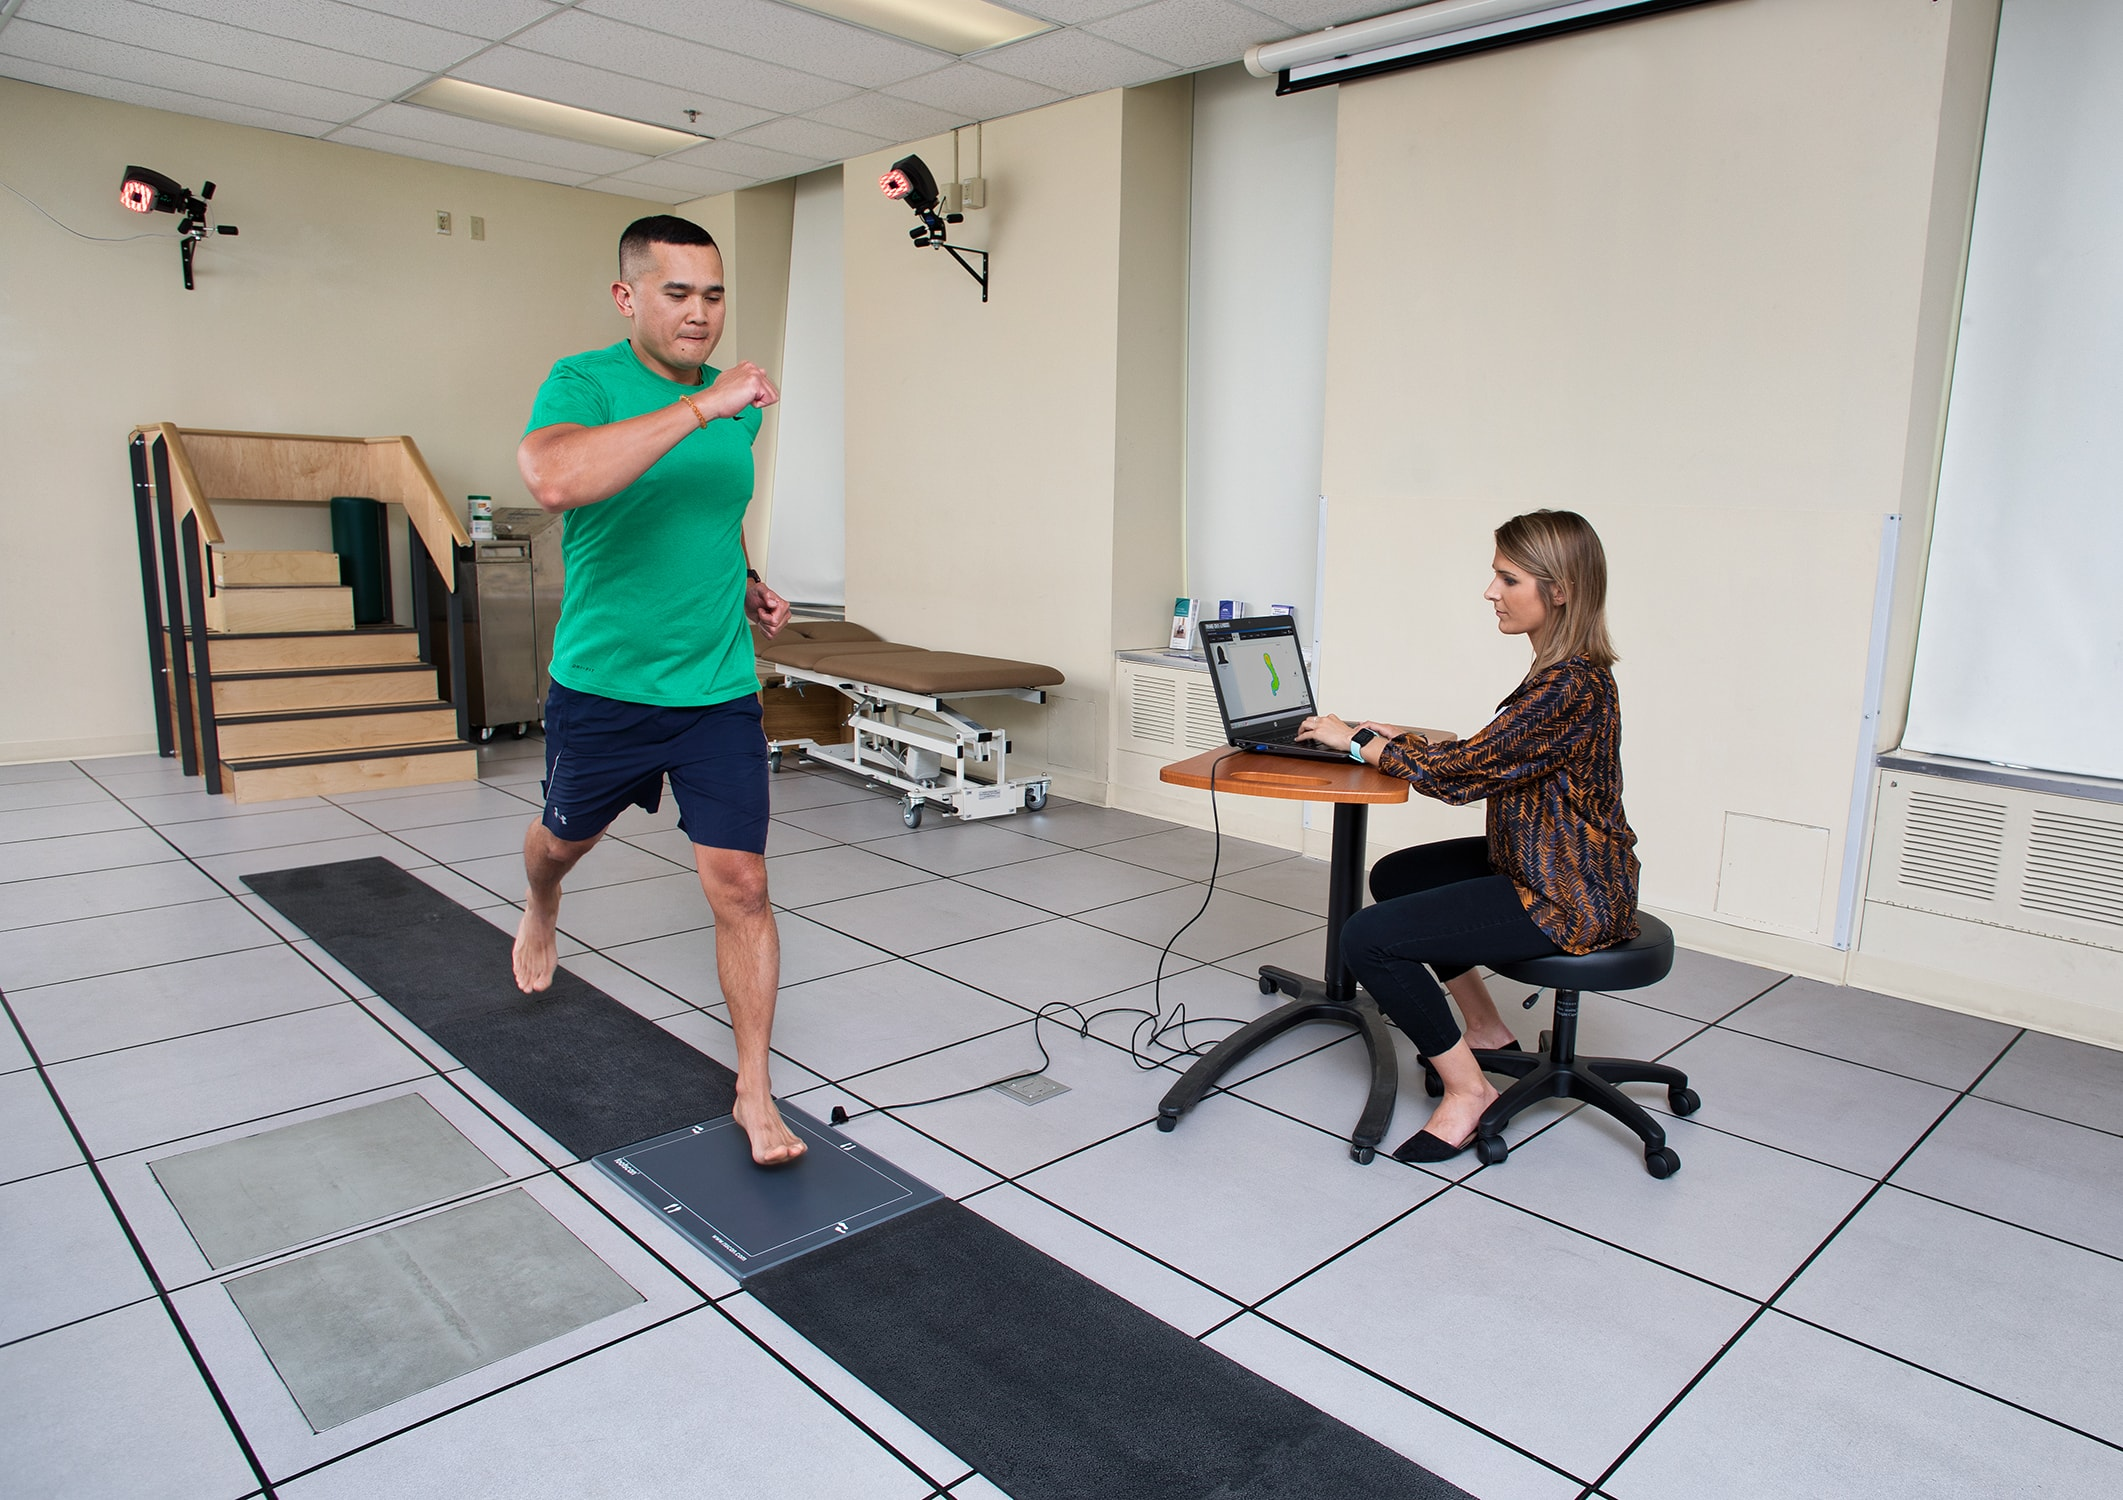 A man running while hooked up to motion sensor gait analysis equipment